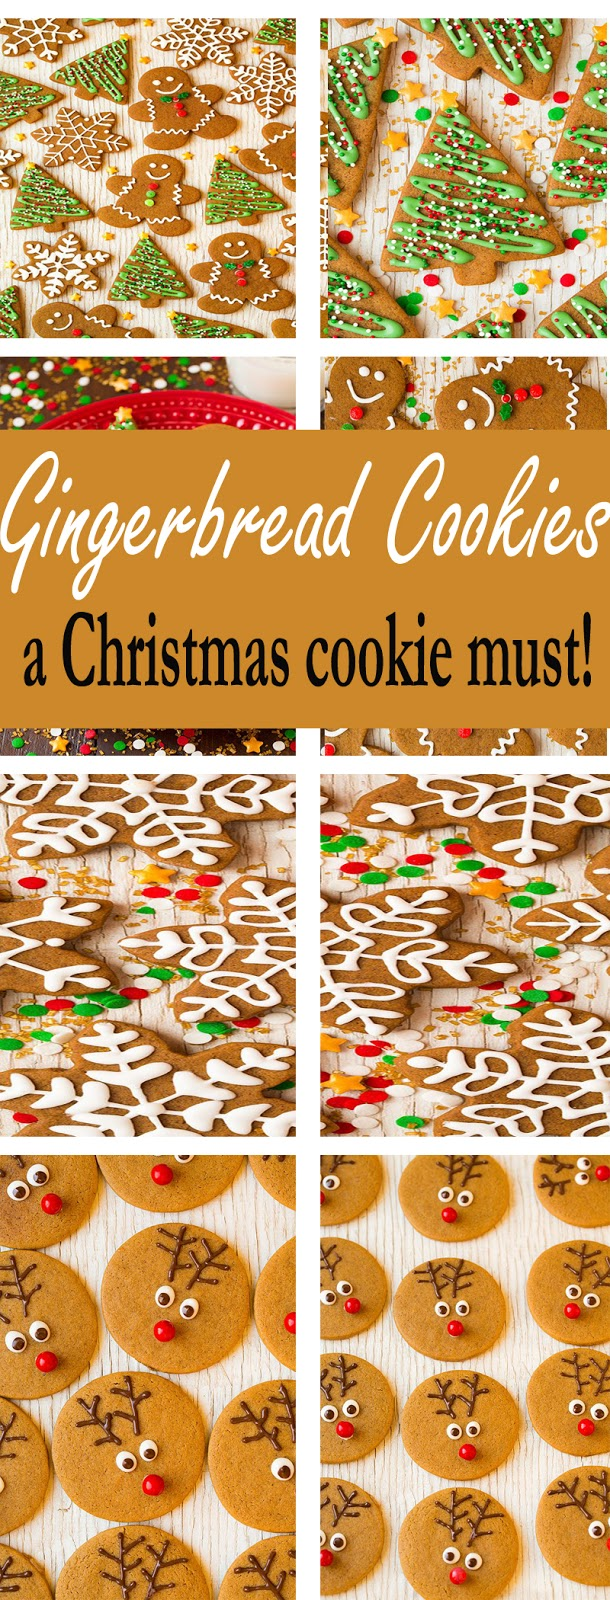 Gingerbread Cookies A Christmas Cookie Must Awesome Christmas